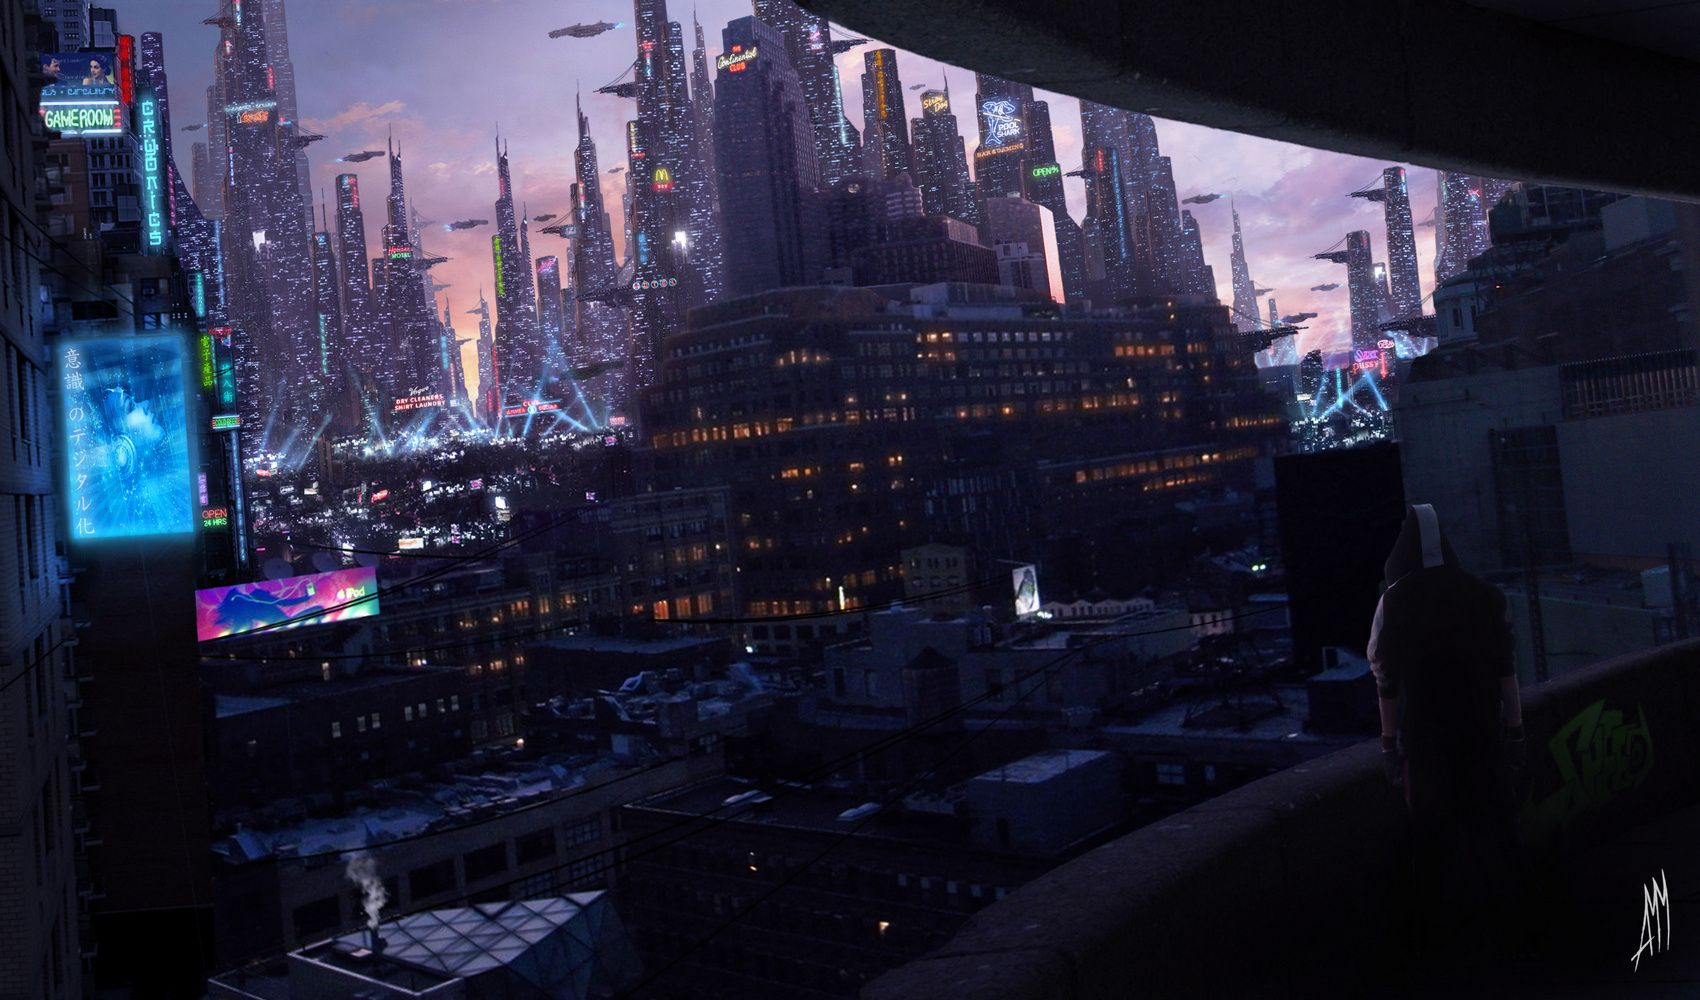 Download Wallpaper Cyberpunk Sunset City Lights Free Desktop Wallpaper In The Resolution 1700x1000 Picture 36 Cyberpunk City Futuristic City Cityscape